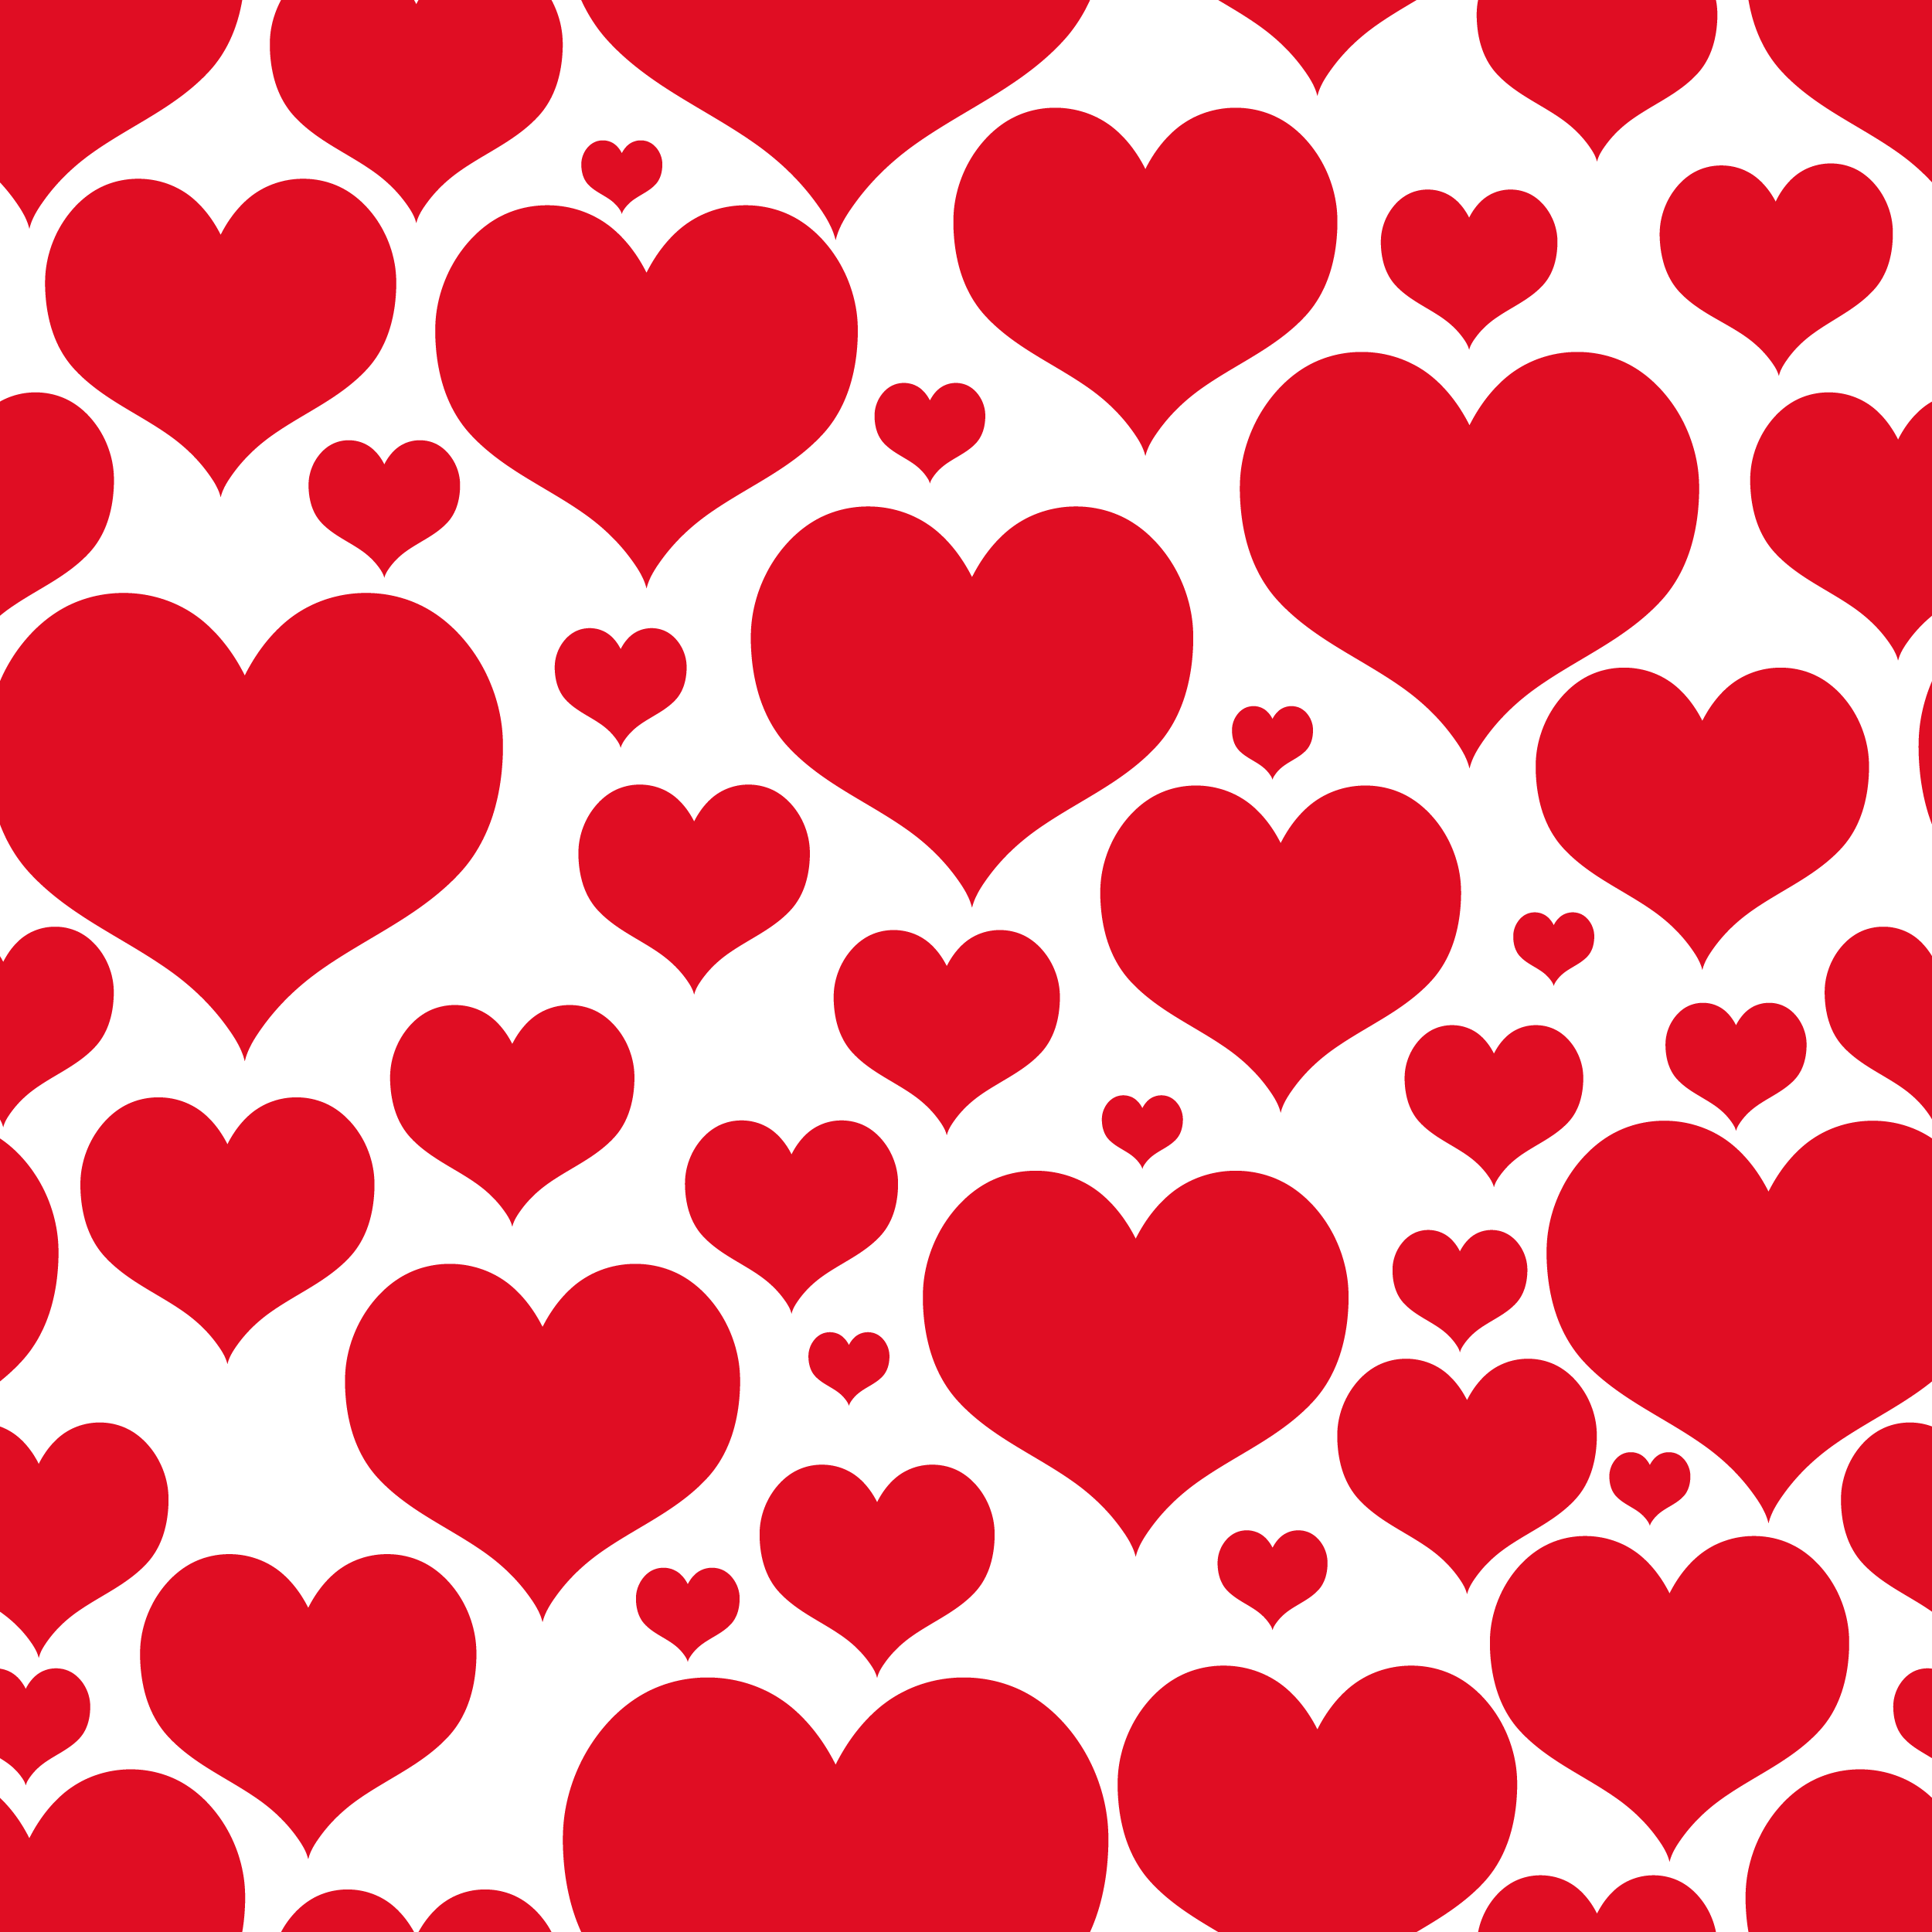 Valentines Day Transparent Heart Decor for Wallpaper Clipart.